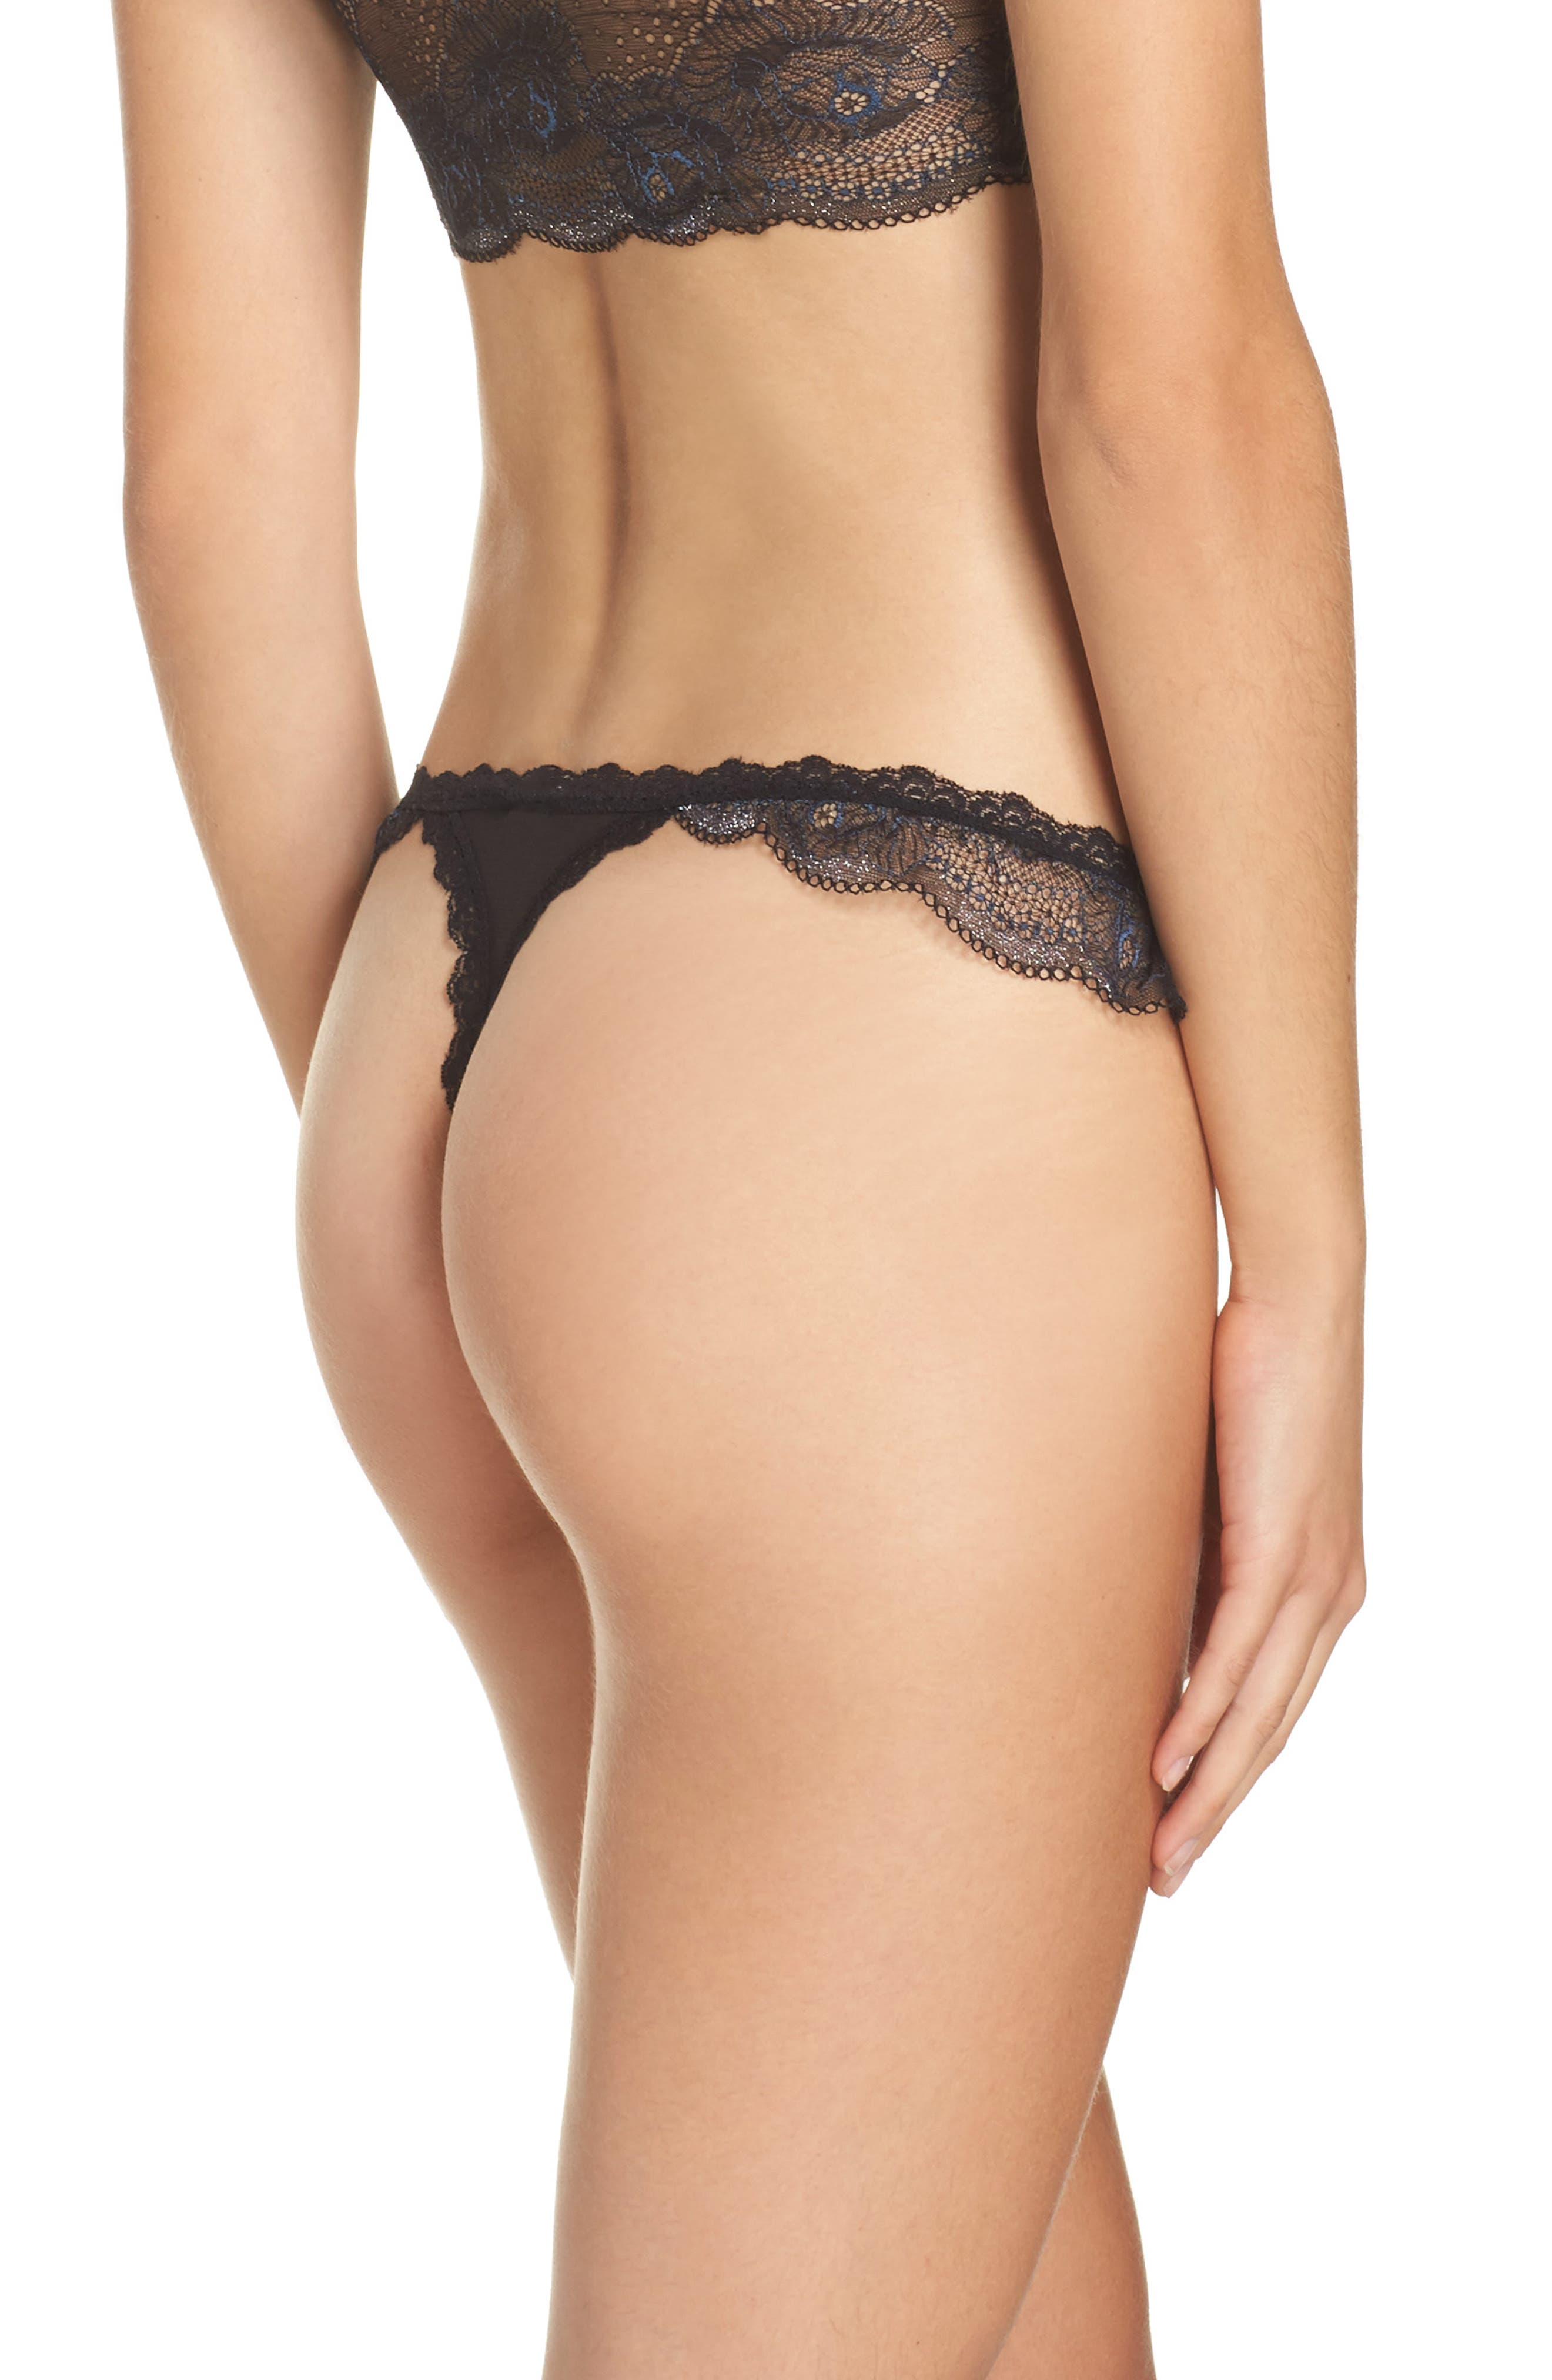 Wild Roses Thong,                             Alternate thumbnail 2, color,                             001